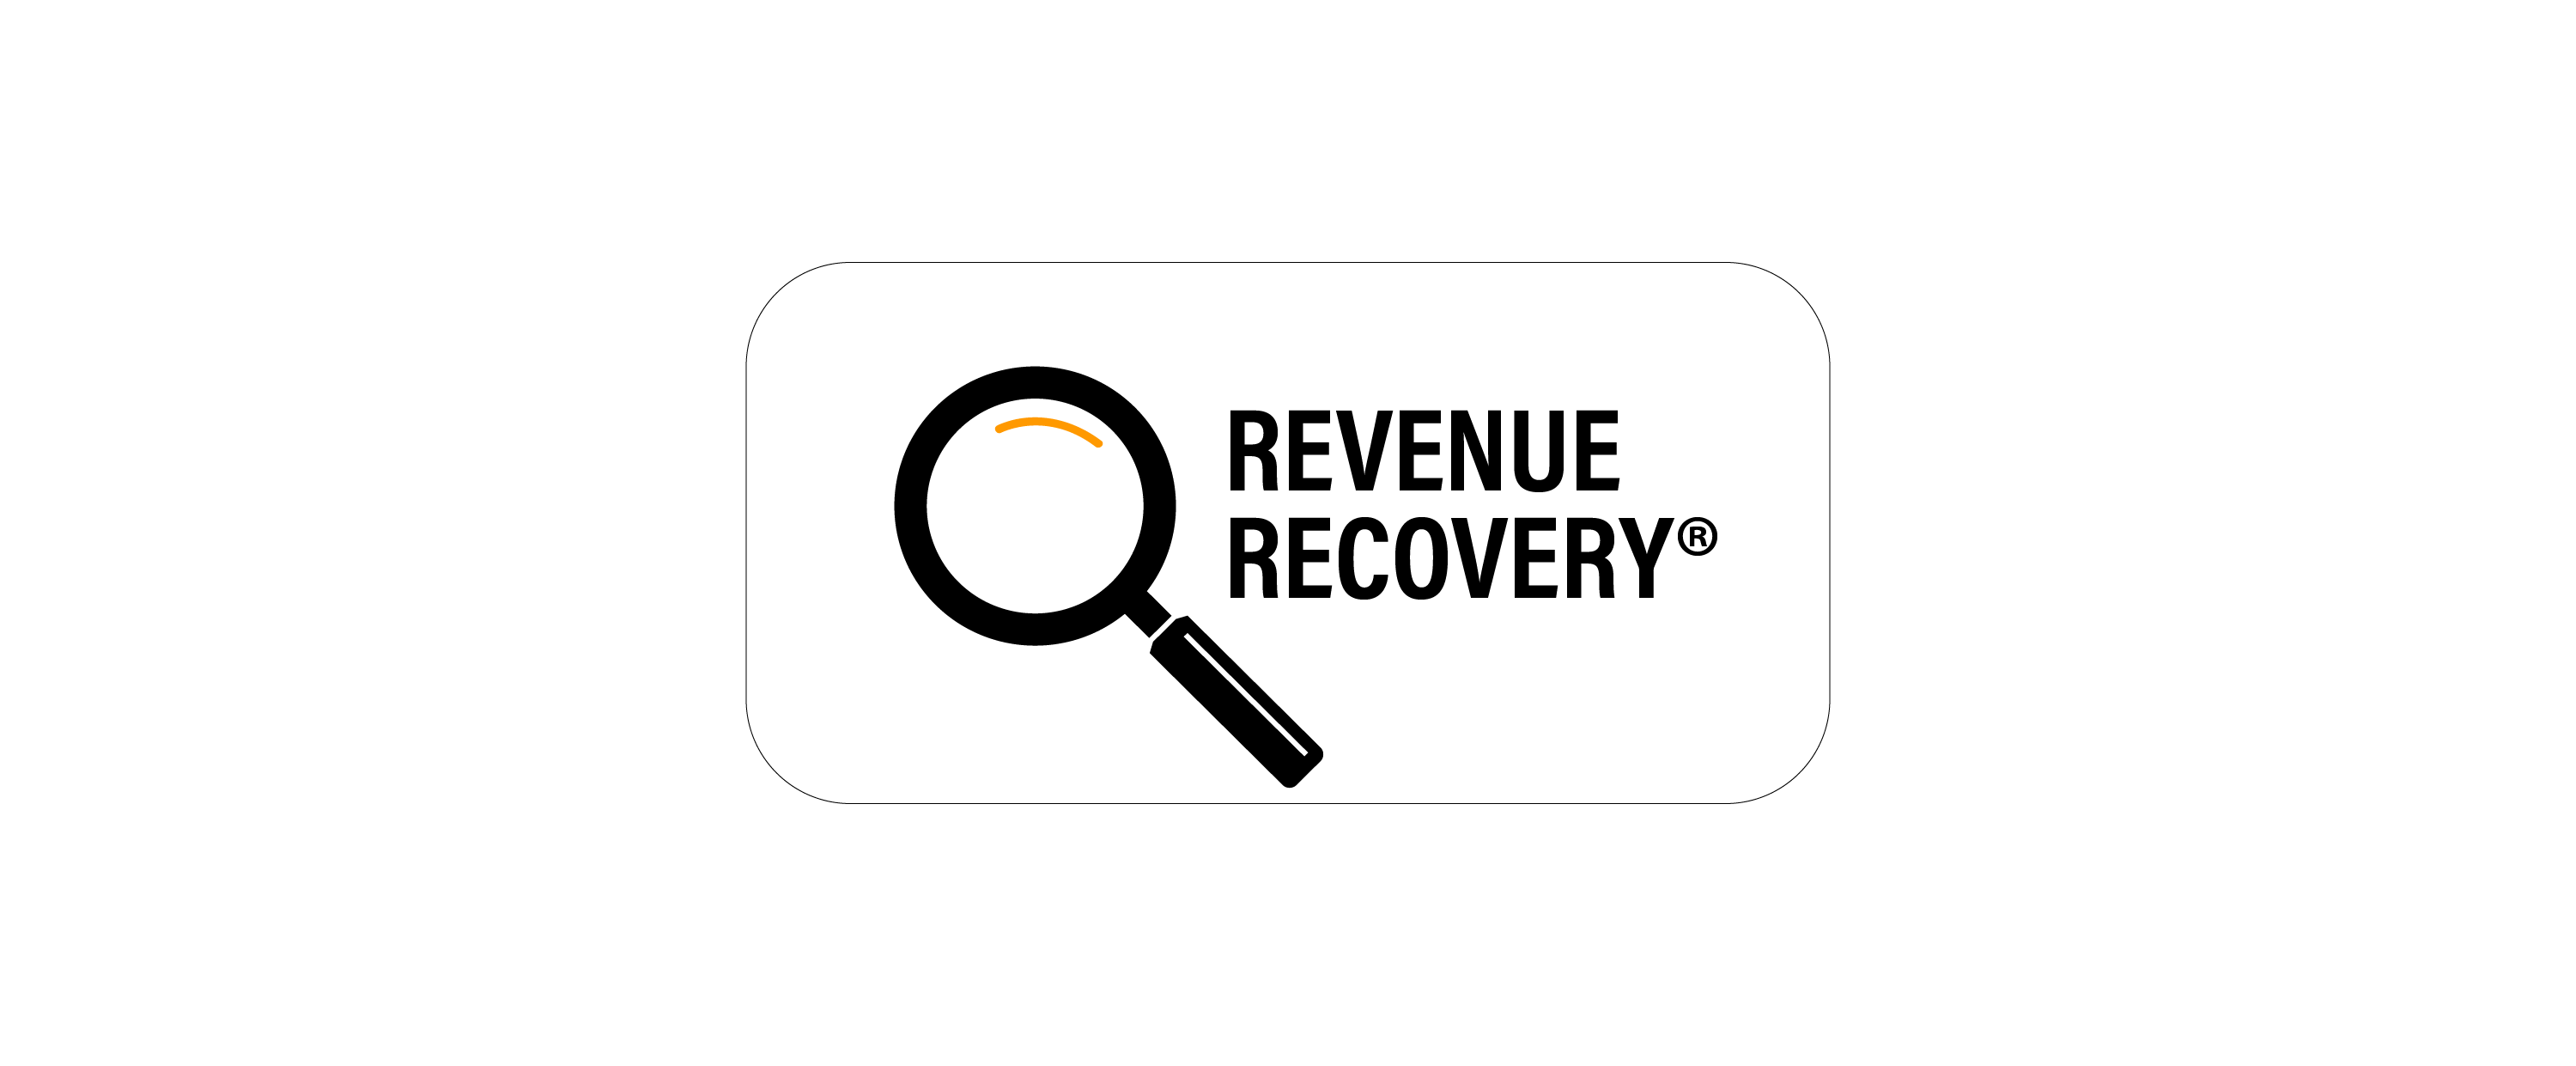 Knoza Partnering with Amazon Aggregators to Provide Revenue Recovery Software Tool for FBA Reimbursements